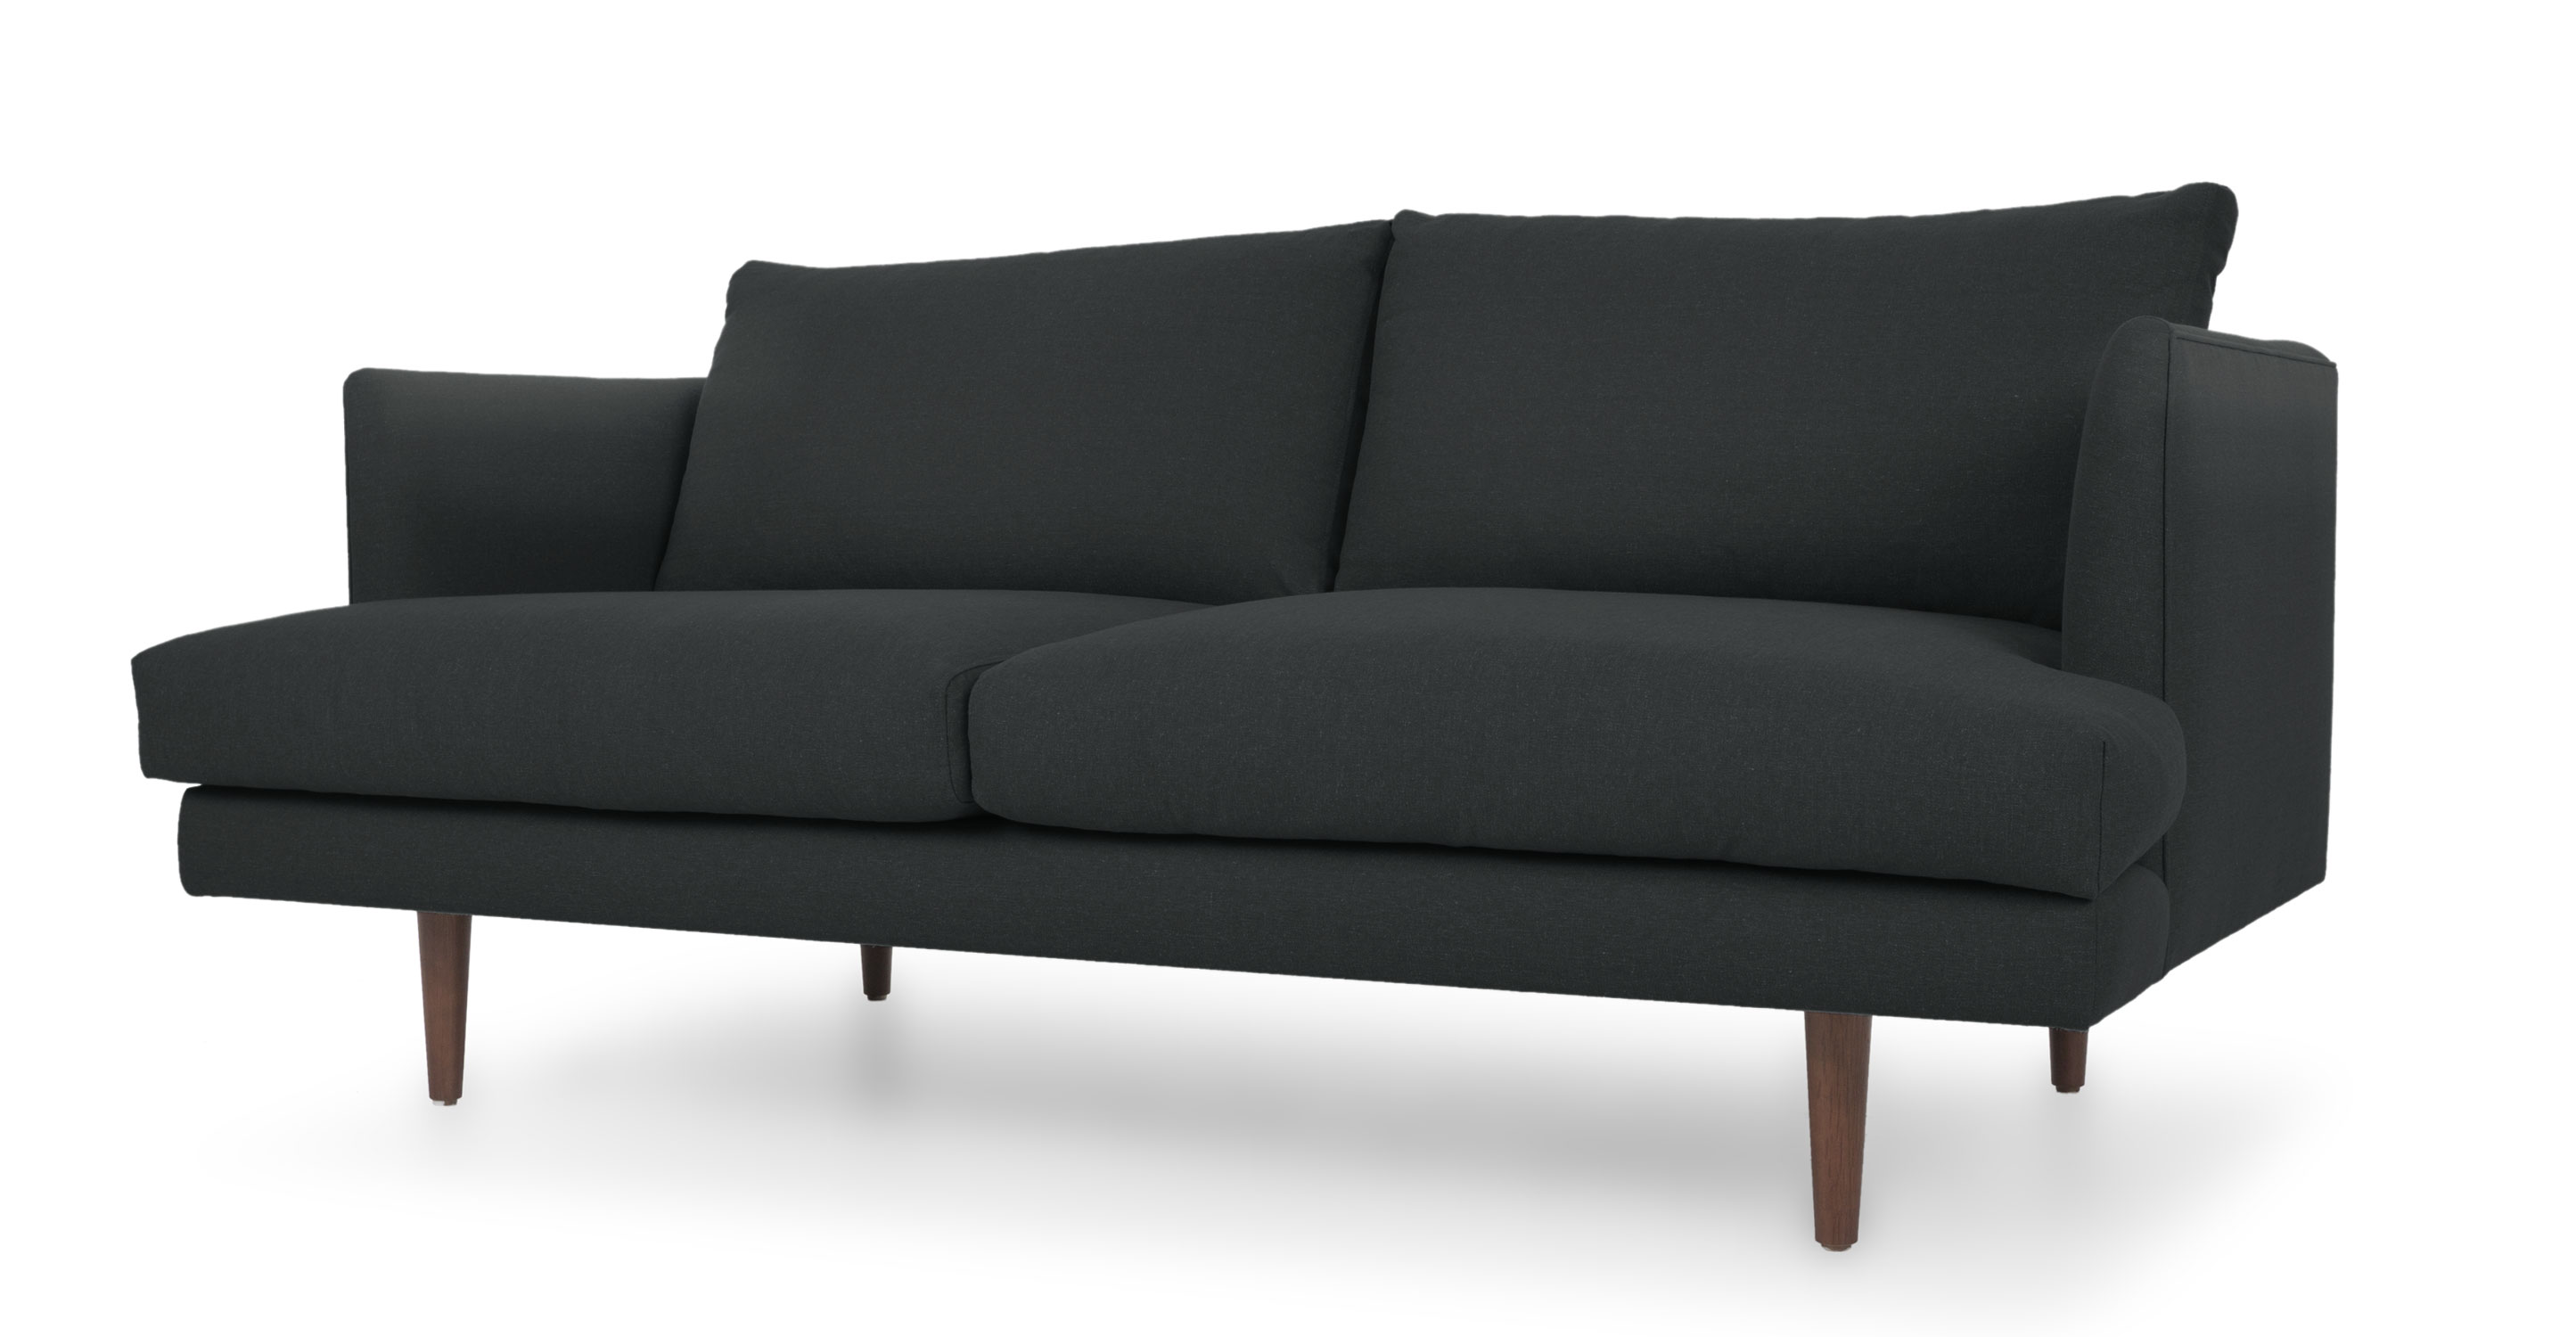 mid century style sofa canada upscale sectional sofas carl basalt gray loveseat loveseats article modern